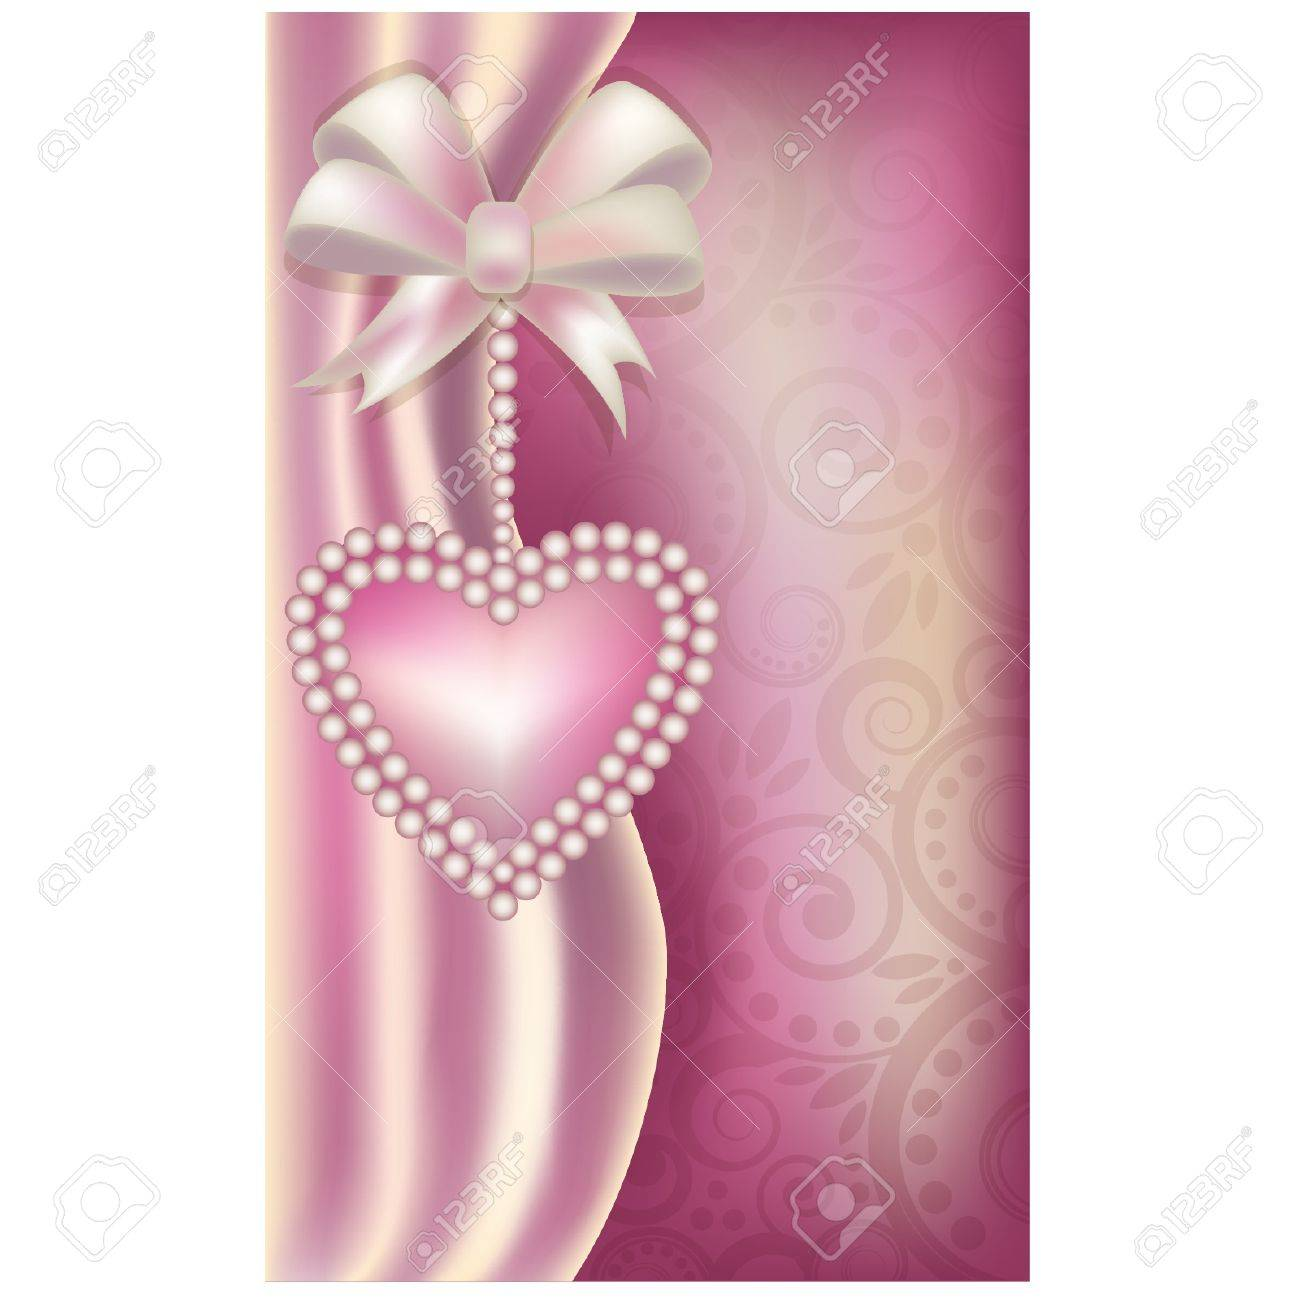 Valentine s Day vertical banner with pearls heart , illustration Stock Vector - 17714056